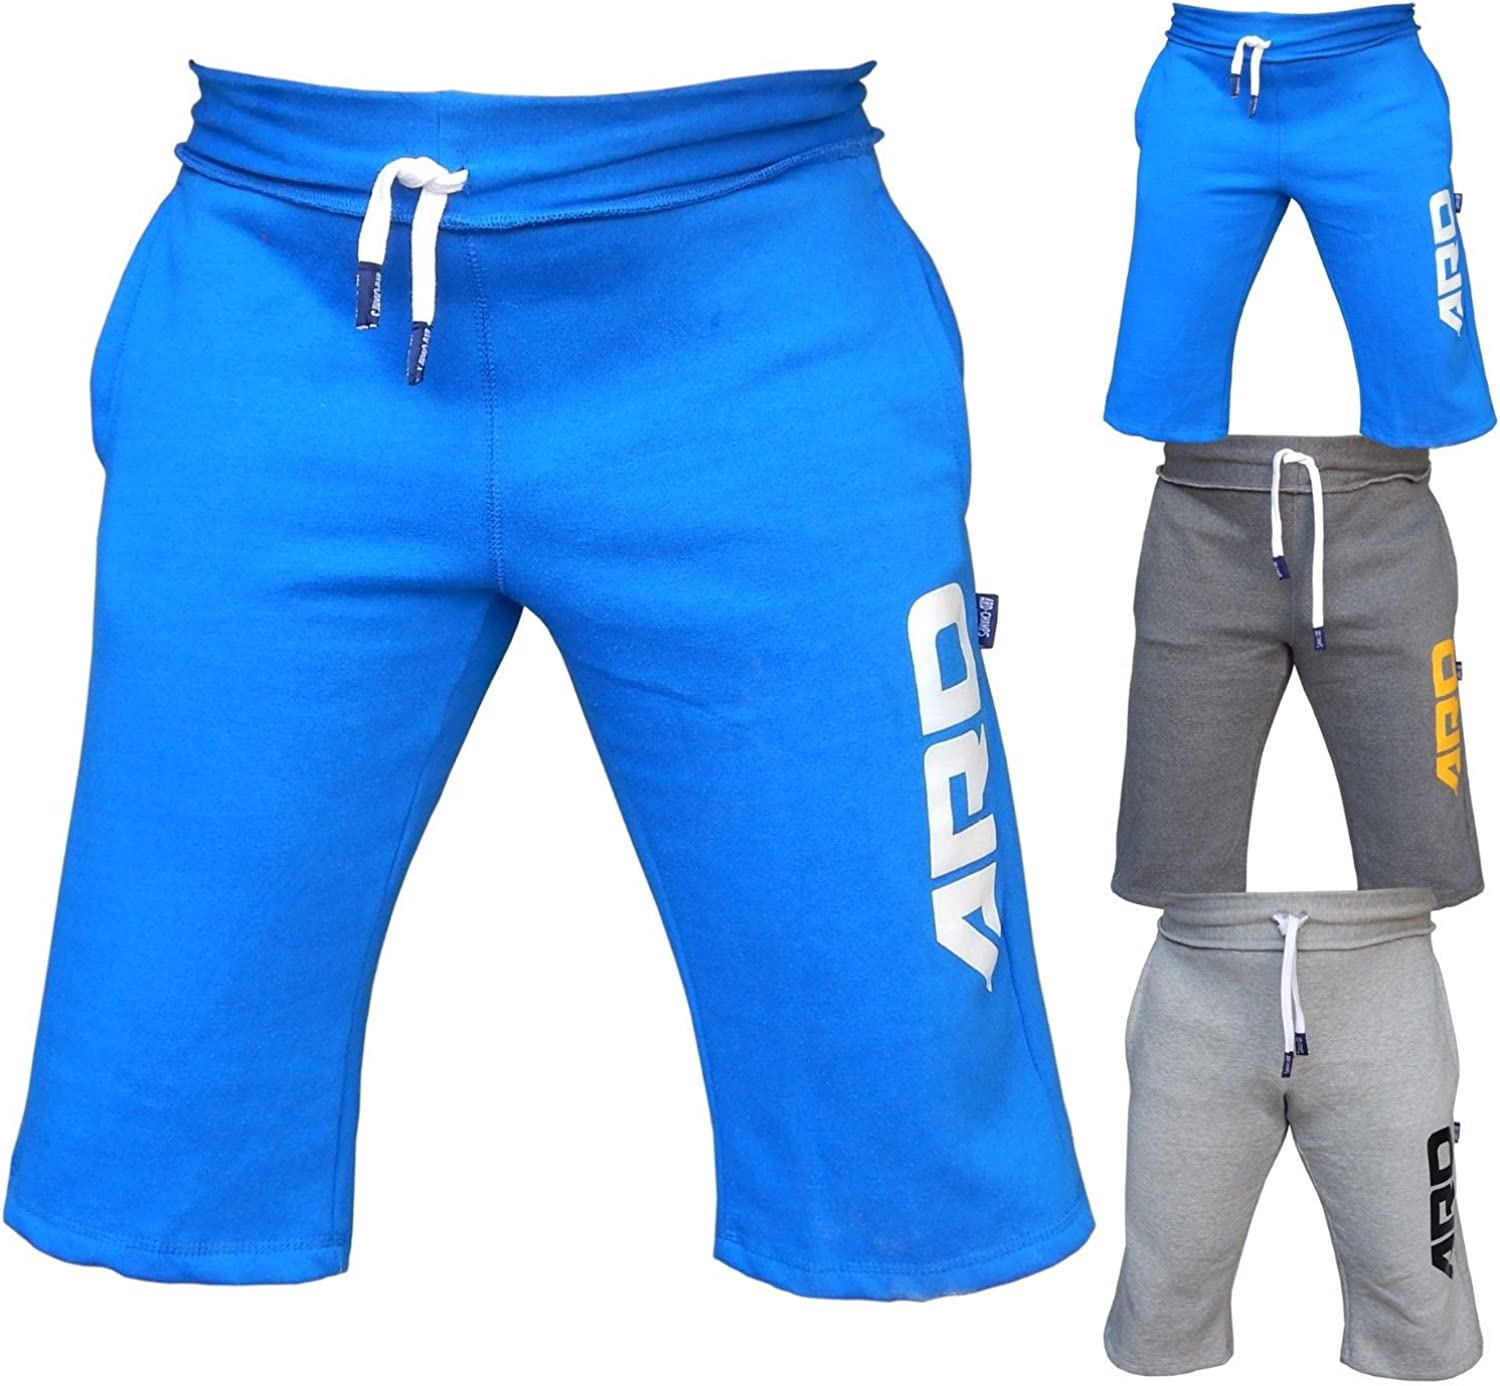 4Fit Mens Cotton Fleece Shorts Jogging Casual Home Wear Martial Art Jogger Navy